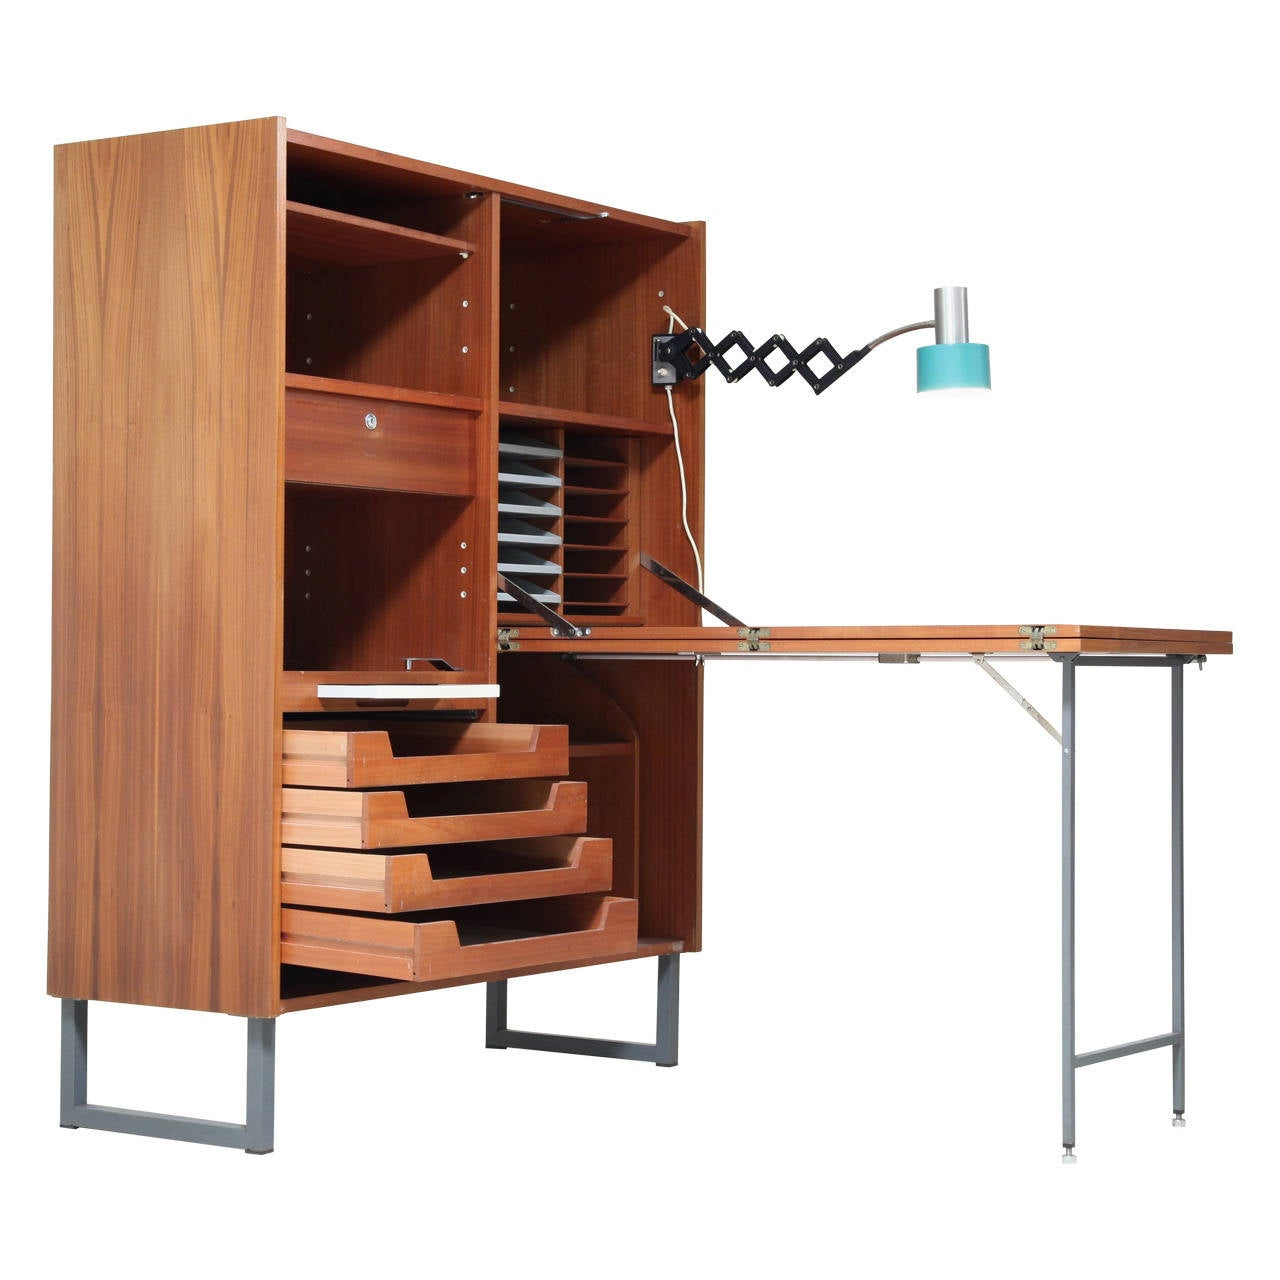 Fold Out Desk Fold Out Desk For Sale At 1stdibs